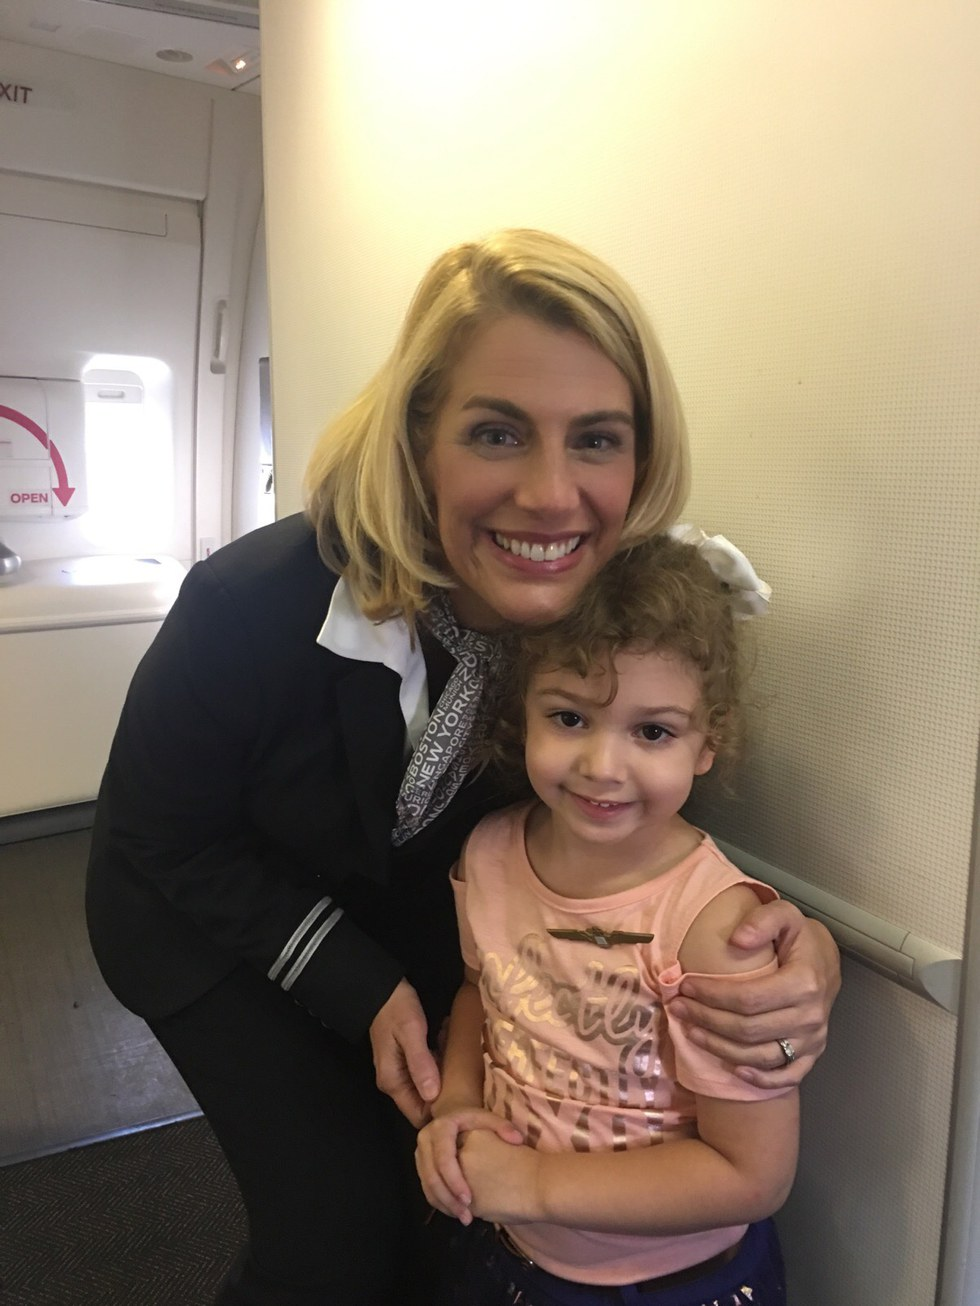 Boston-based Flight Attendant Sara Nelson with a small child been evacuated from Puerto Rico